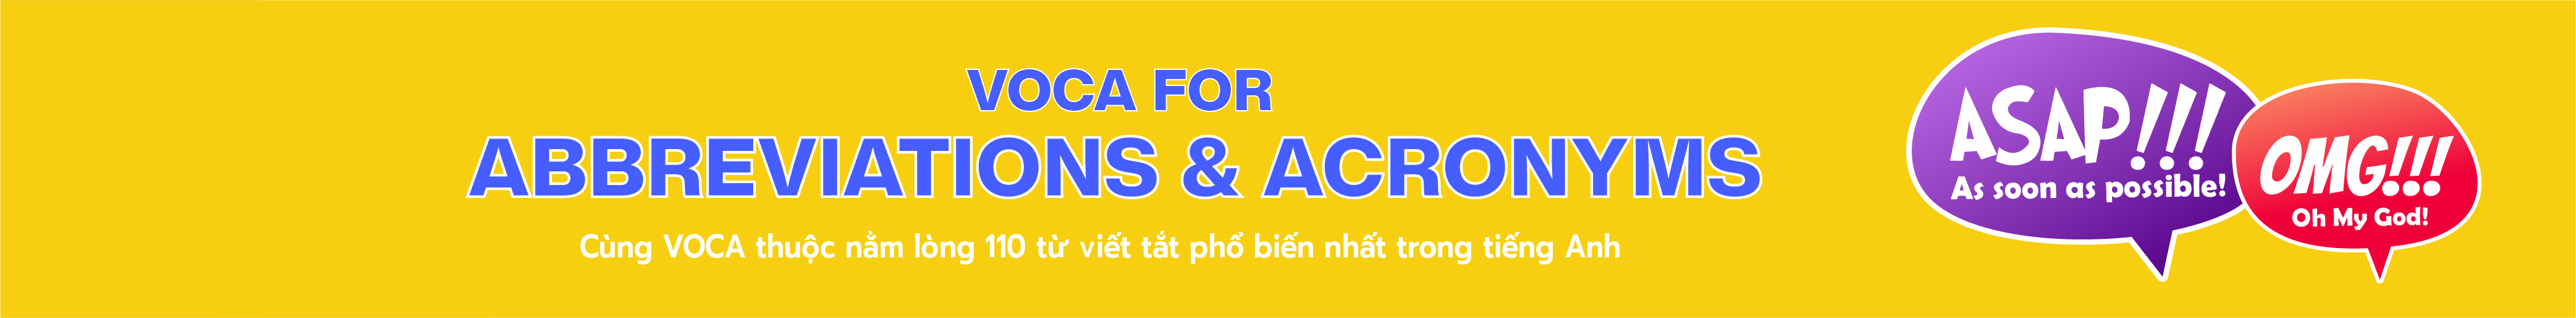 VOCA For Abbreviations and Acronyms